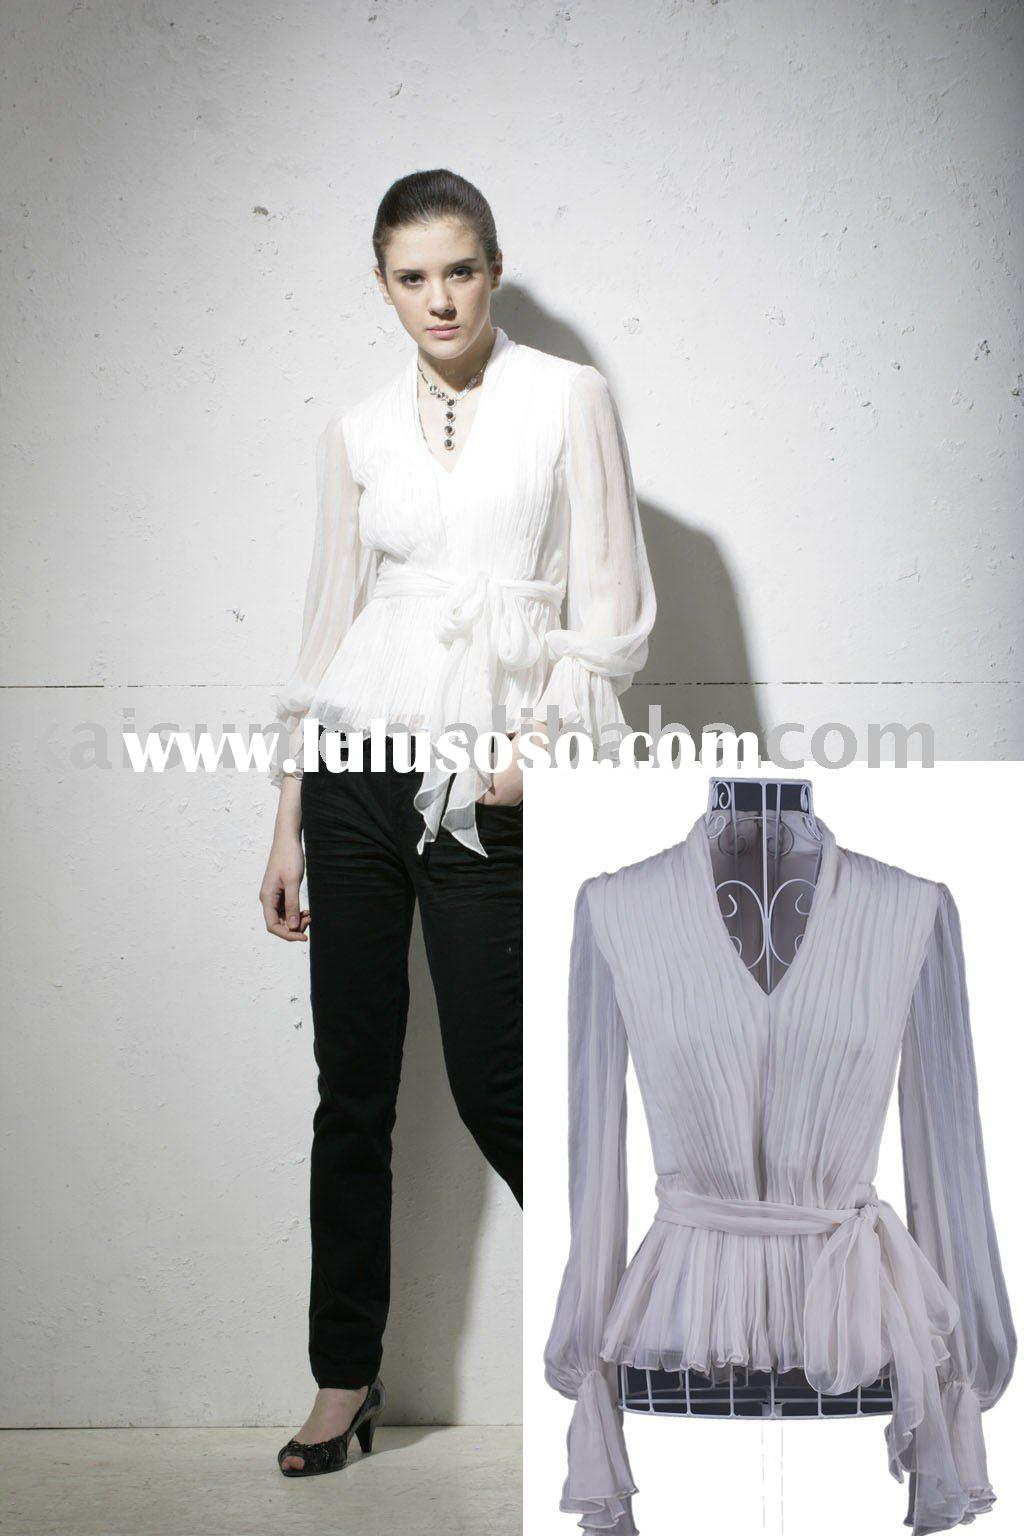 Ladies' fashion silk crinkle chiffon woven shirt with long sleeve and v-neck